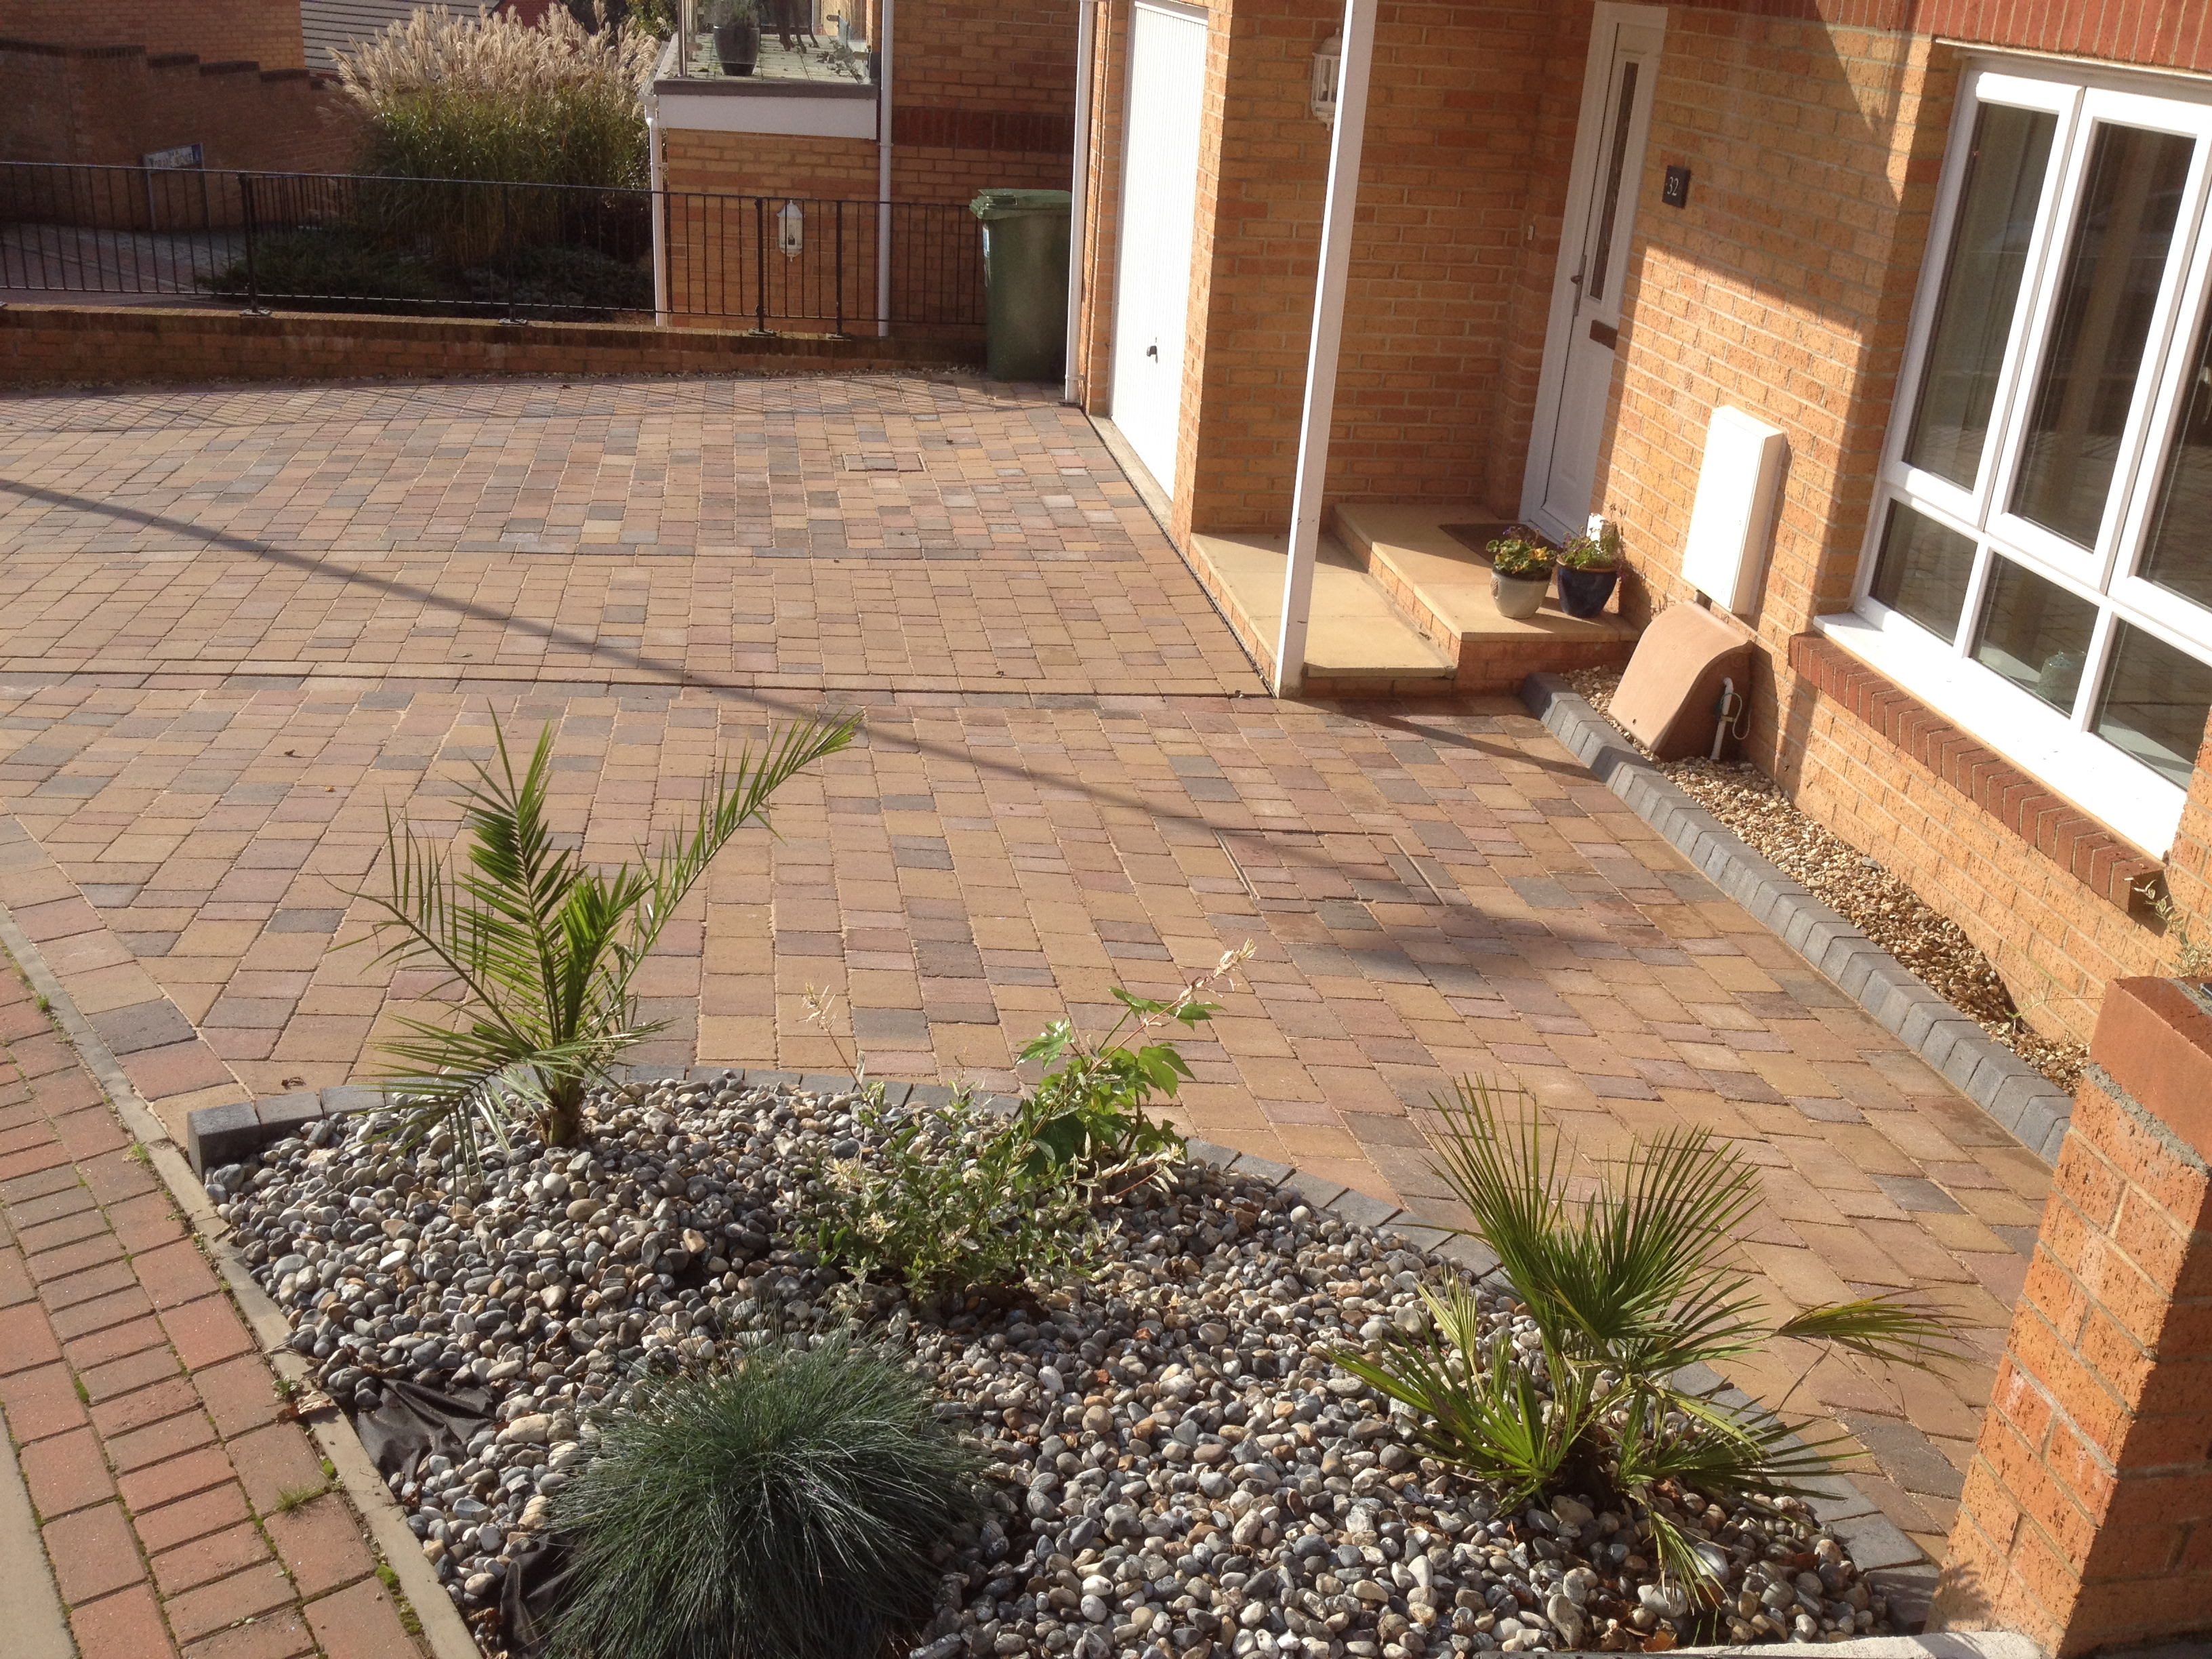 Oakmere Landscaping in Salford install driveways for customers throughout Greater Manchester